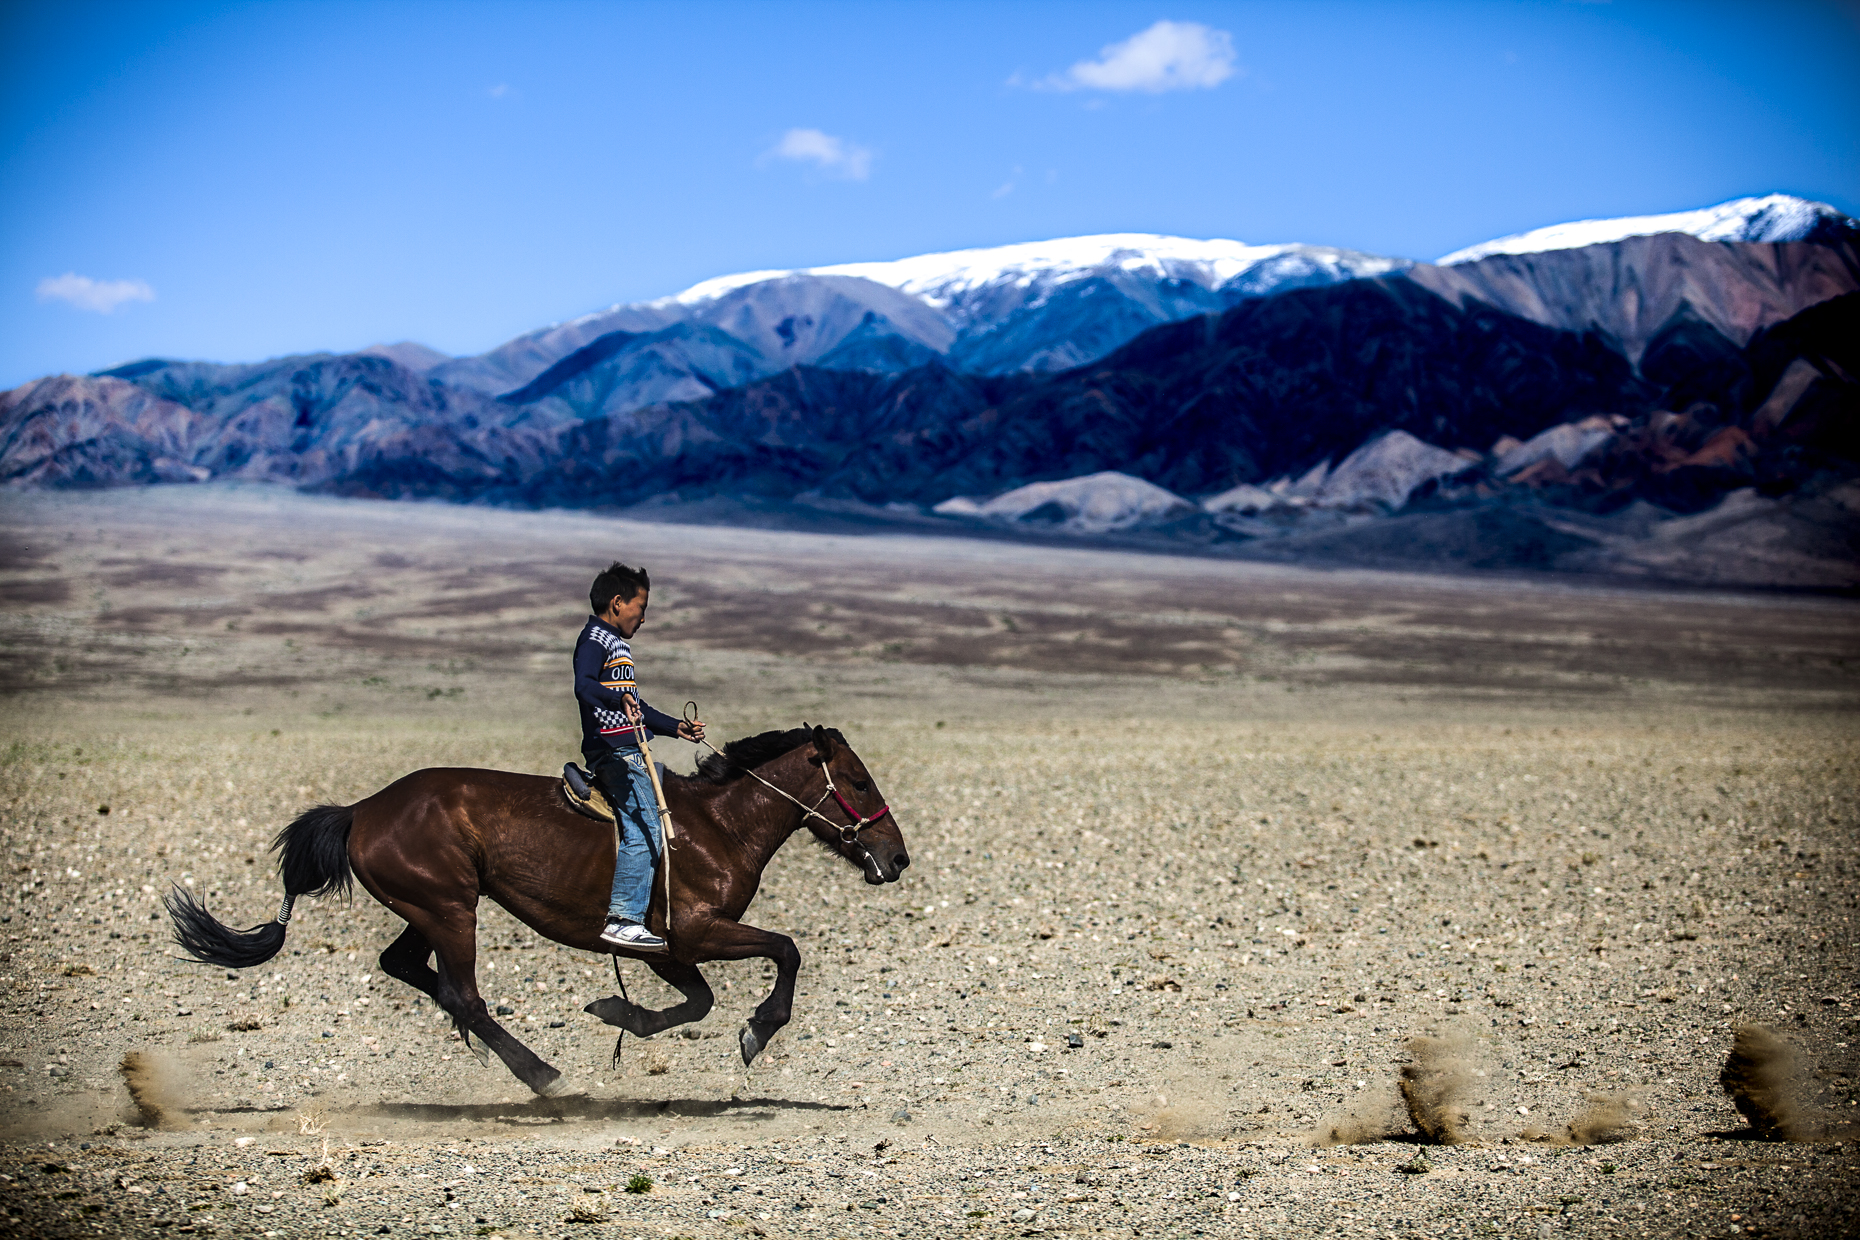 A child on horseback riding in the steppes of Mongolia